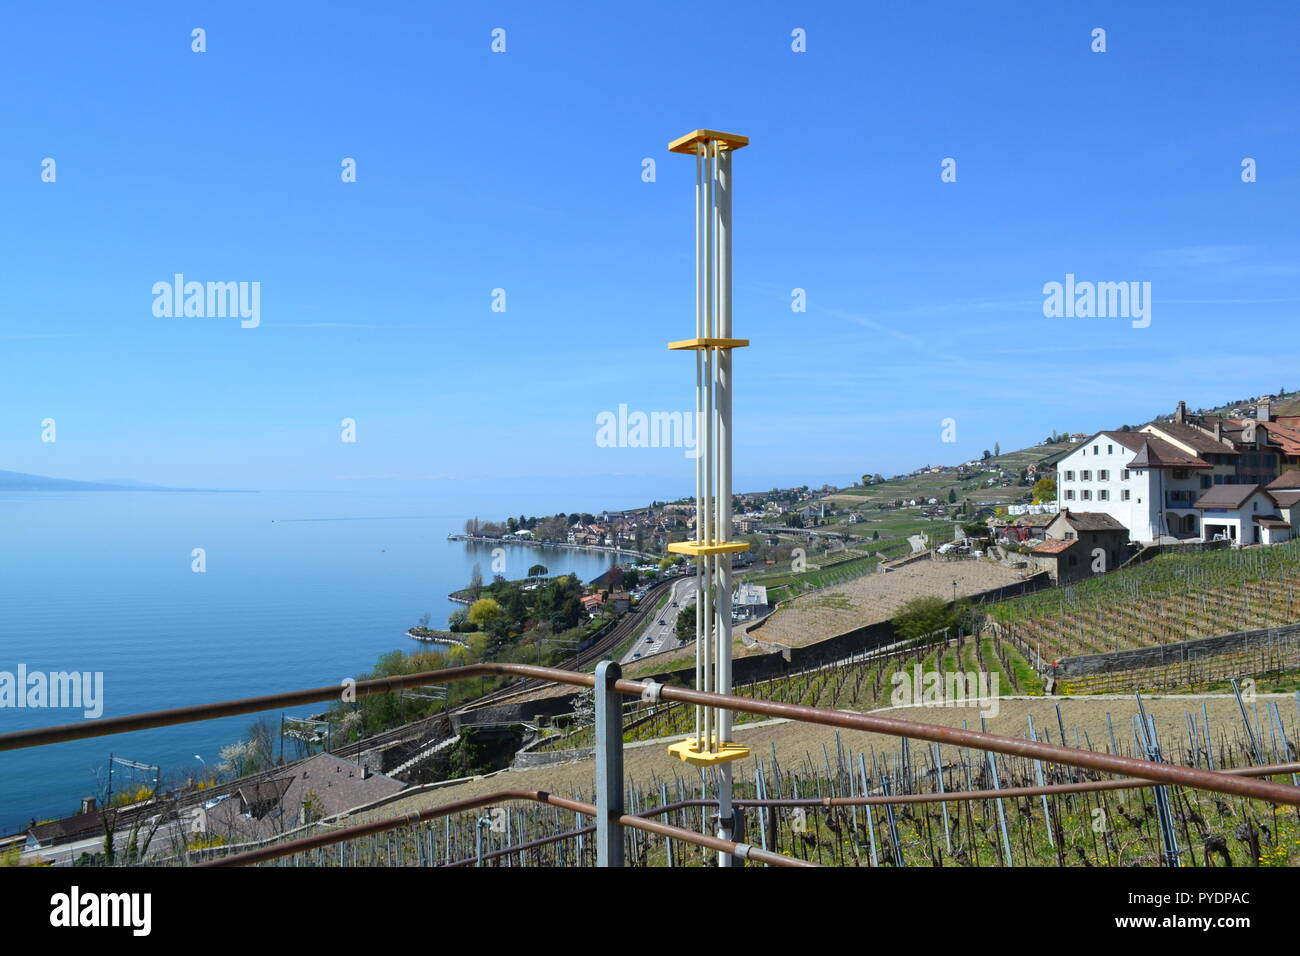 An anti-hail rocket launcher in Epesses, Vaud, Switzerland. Still used to protect grape crops yet science does not support the idea that they work. - Stock Image